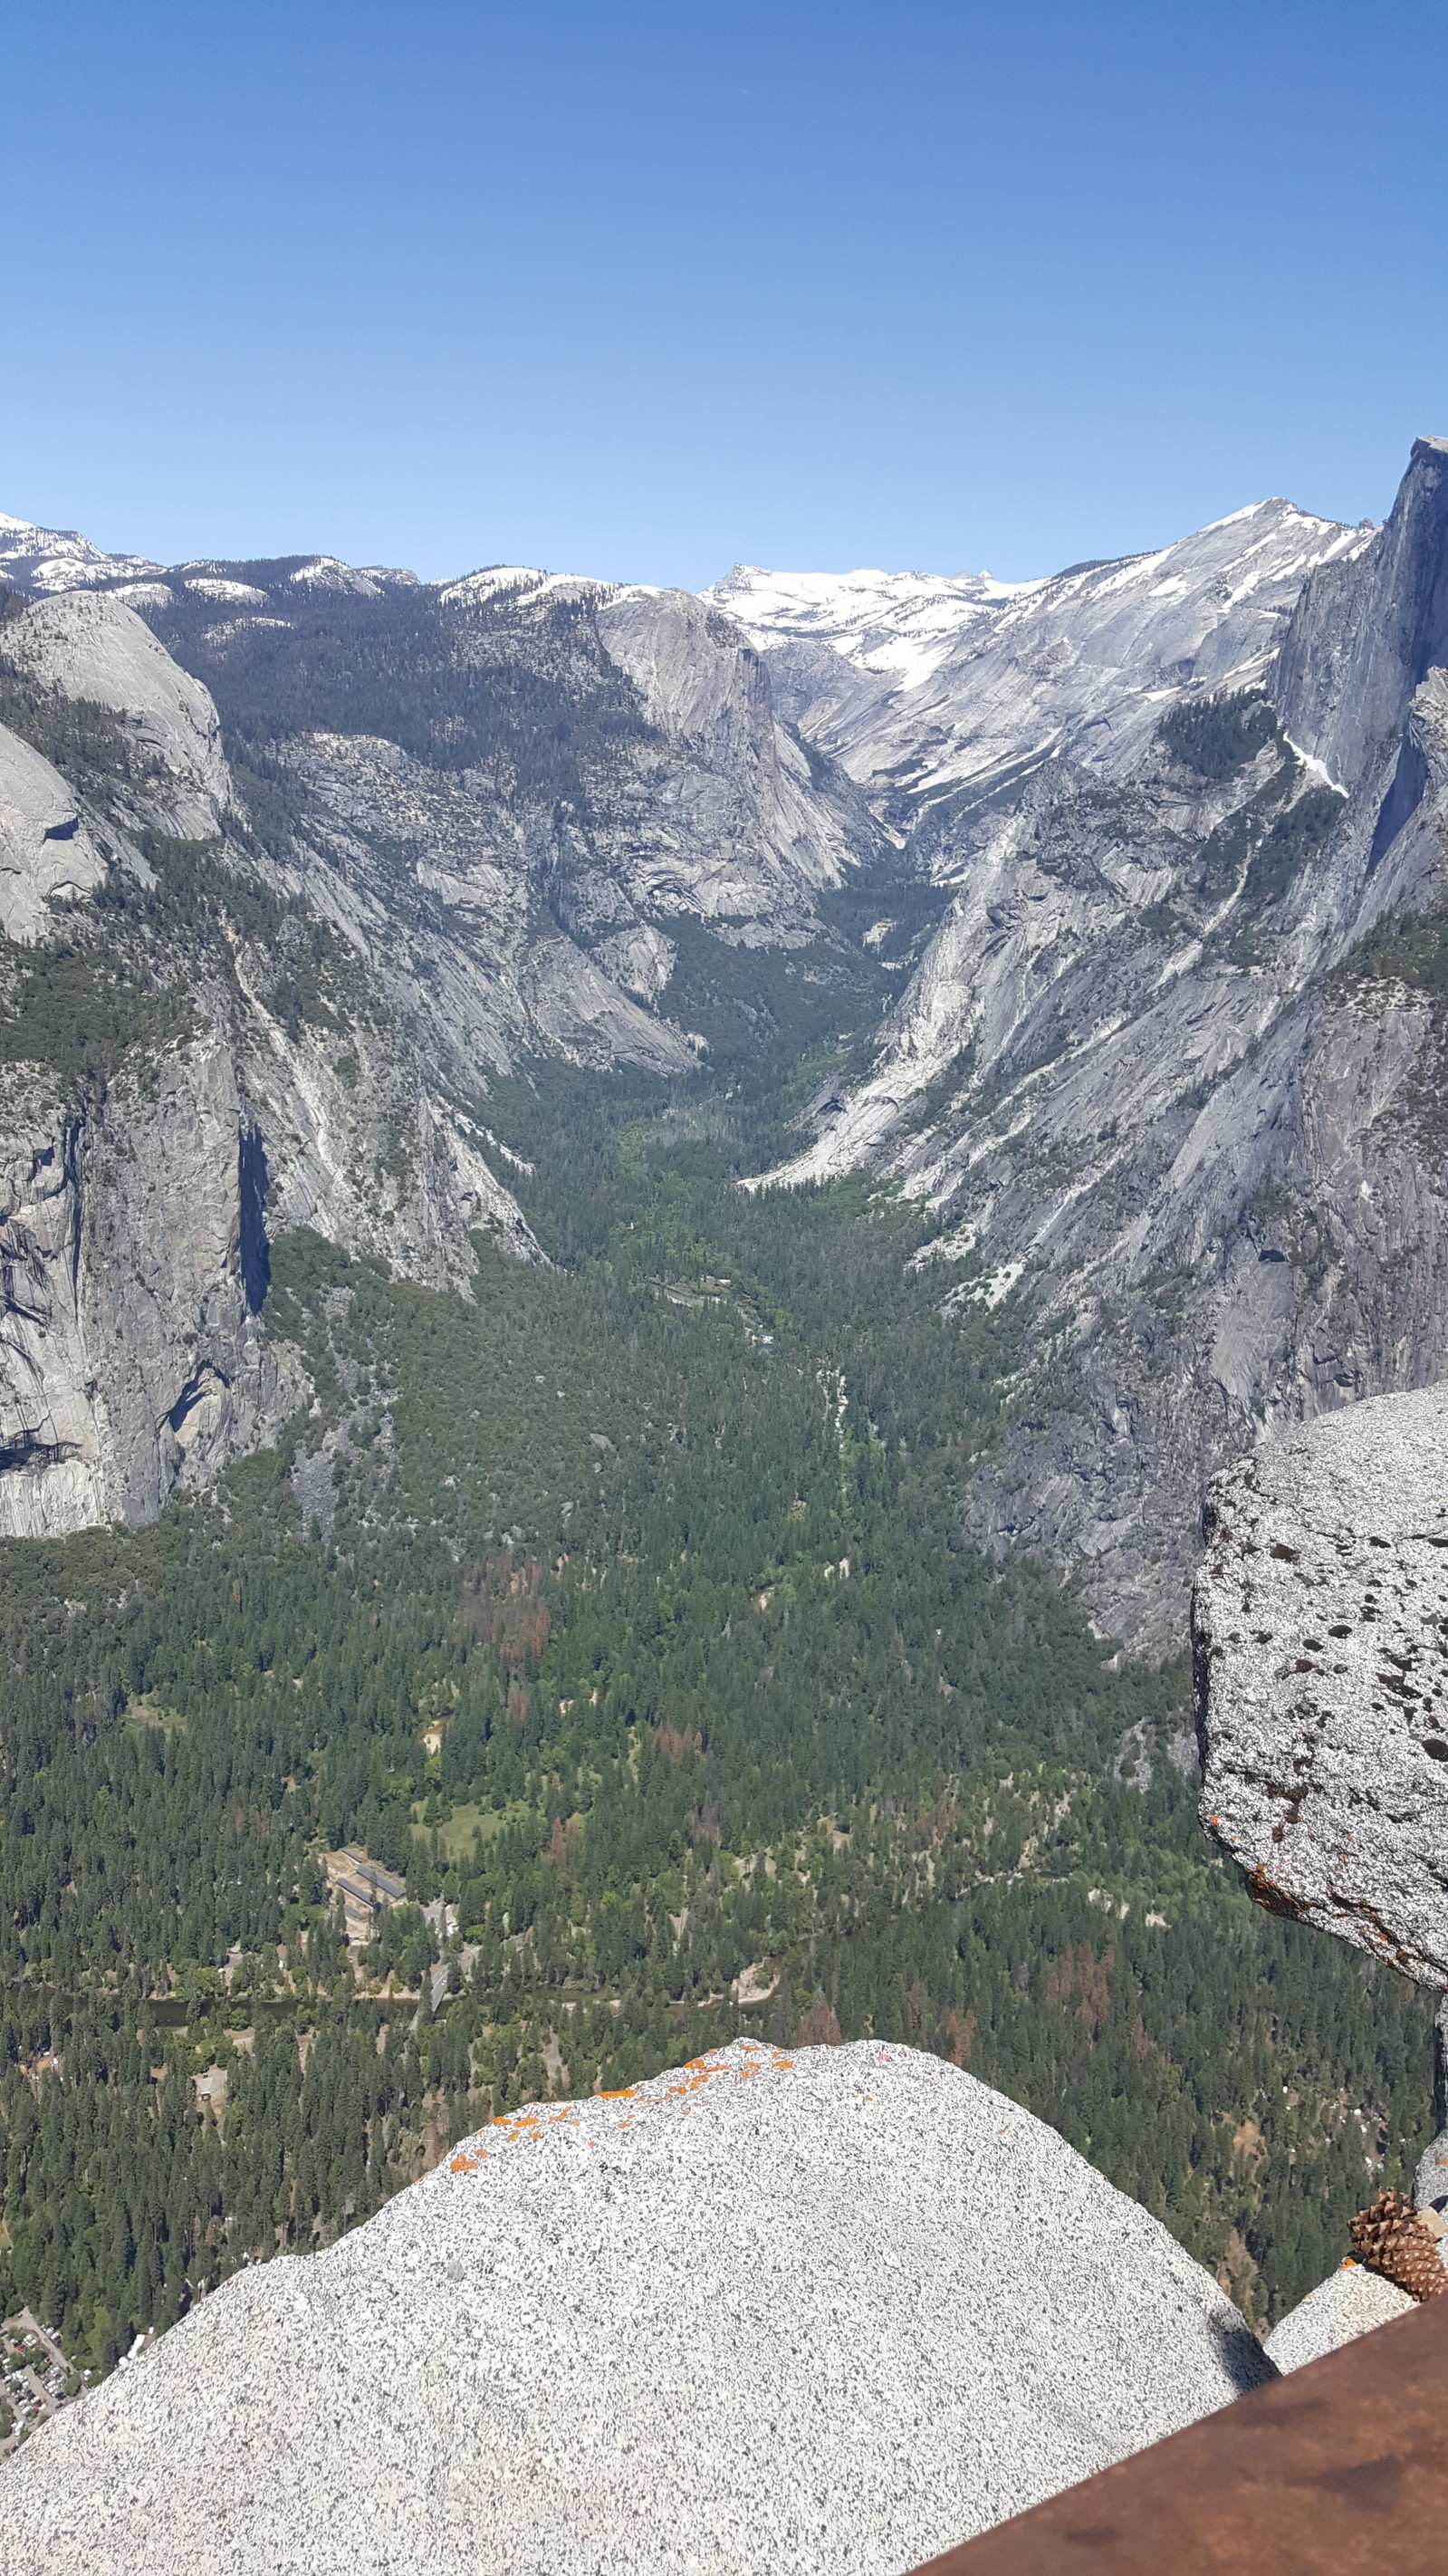 cabin rehabilitations to treeline from village structural we wood portfolio historic curry through cabins park completed dsc national the construction of in yosemite and